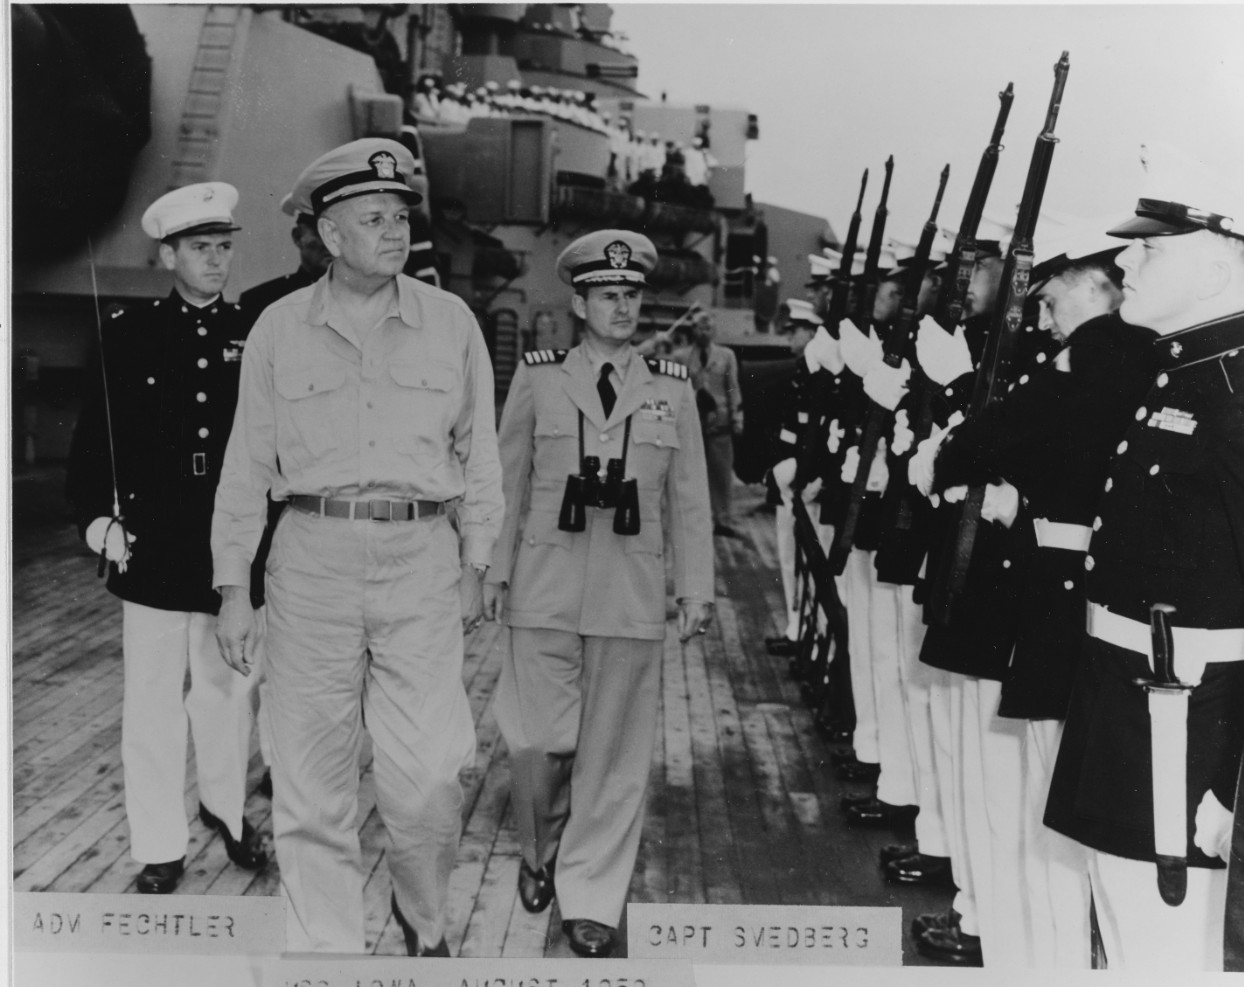 Admiral Fechteler is escorted by Captain William R. Smedberg III, while inspecting Marines aboard the USS Iowa in August 1952, off Wonsan, Korea.